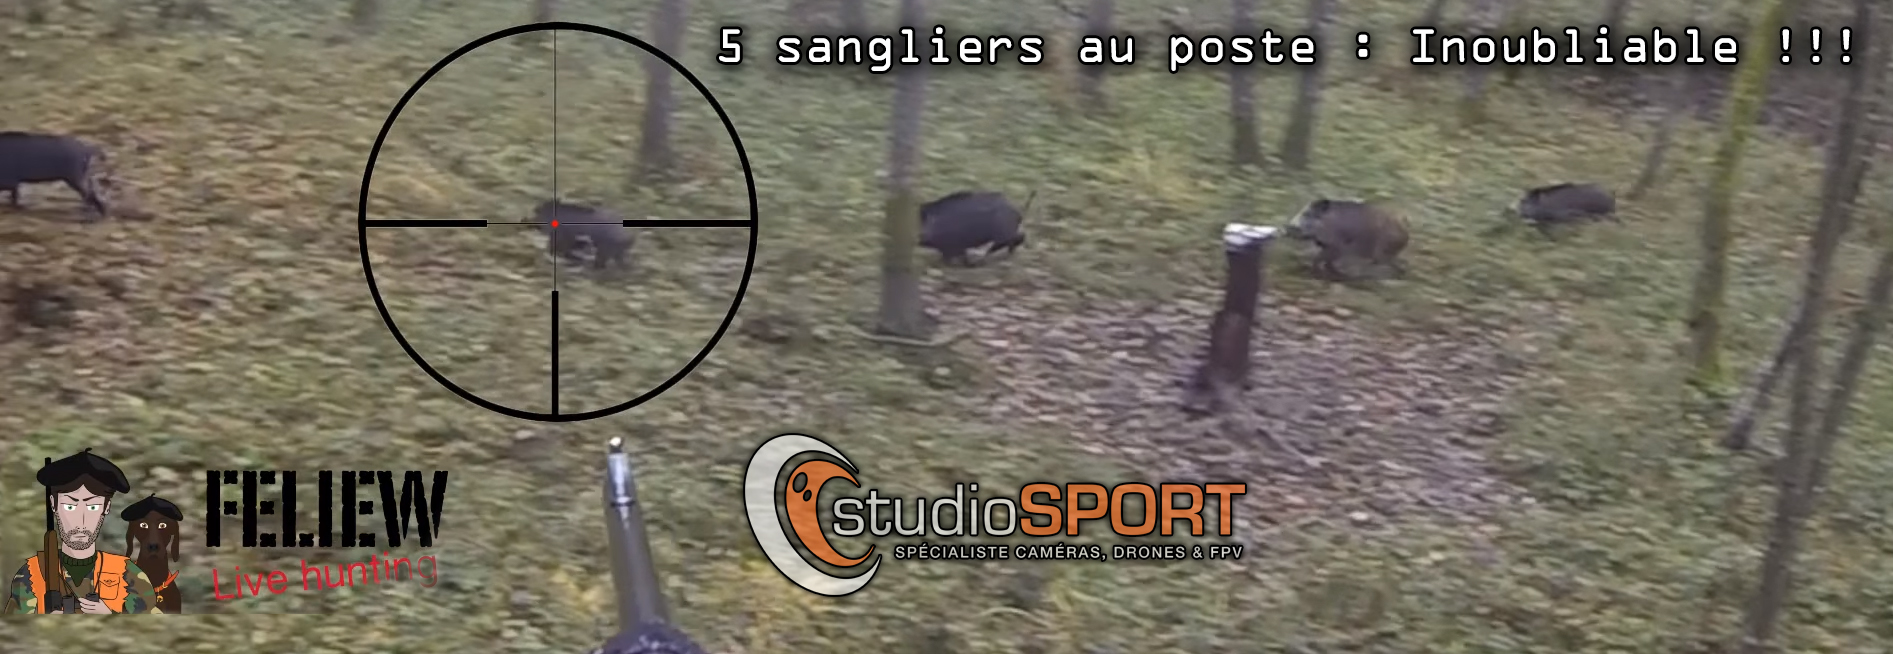 sangliers Youtube vidéo chasse